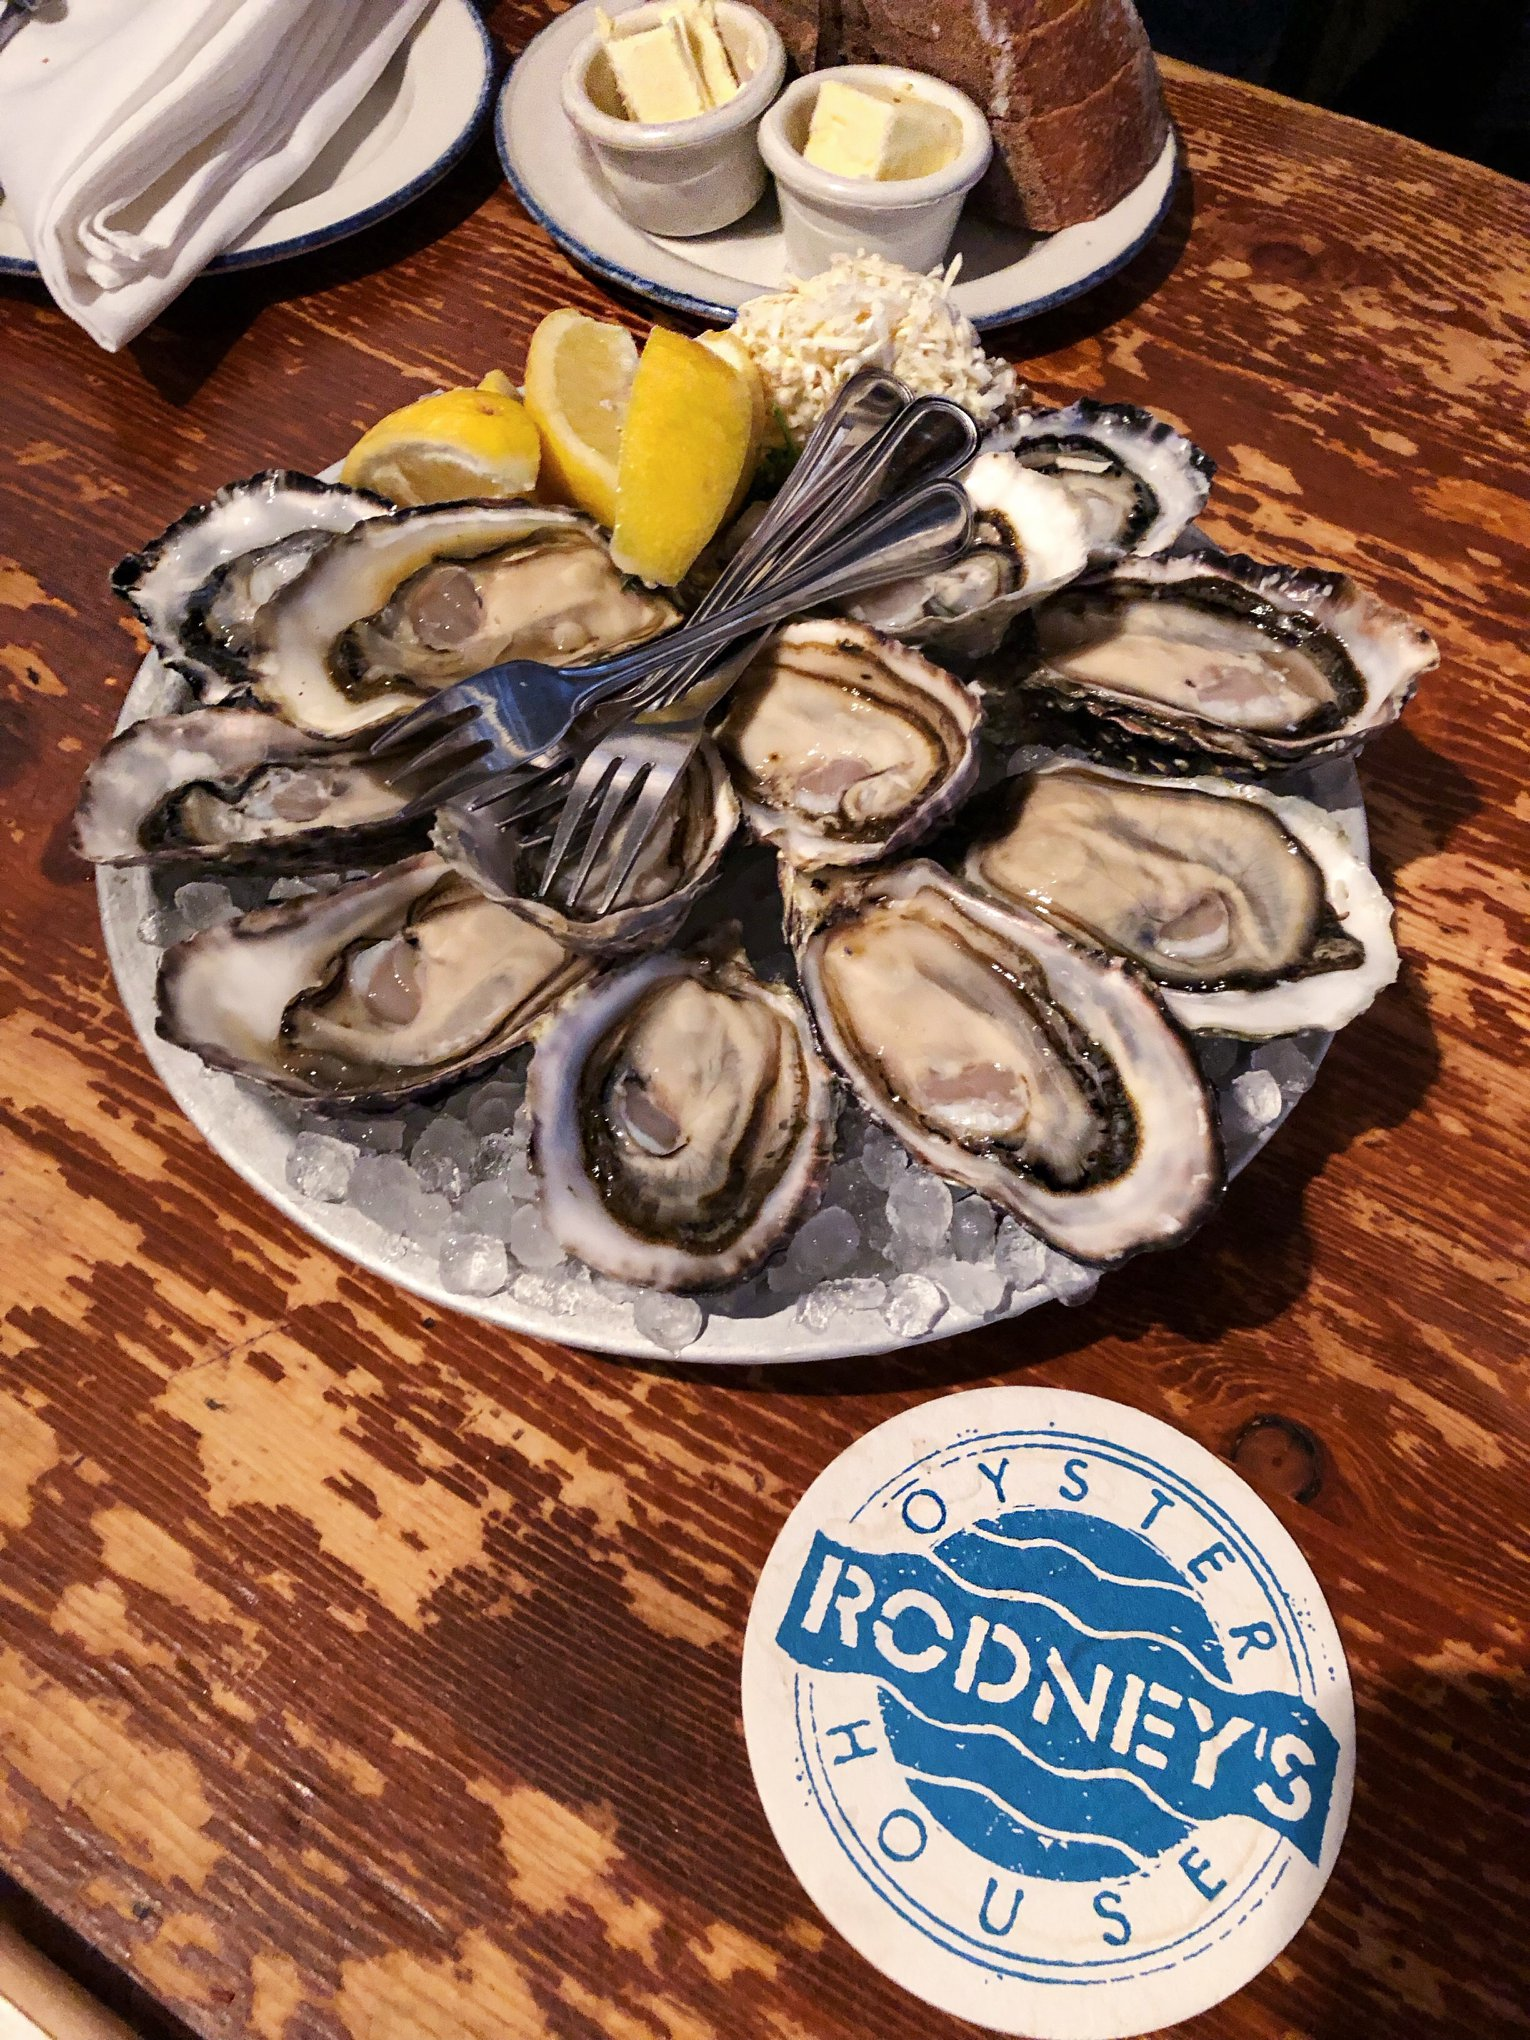 Austern in Rodney's Oyster House in Vancouver